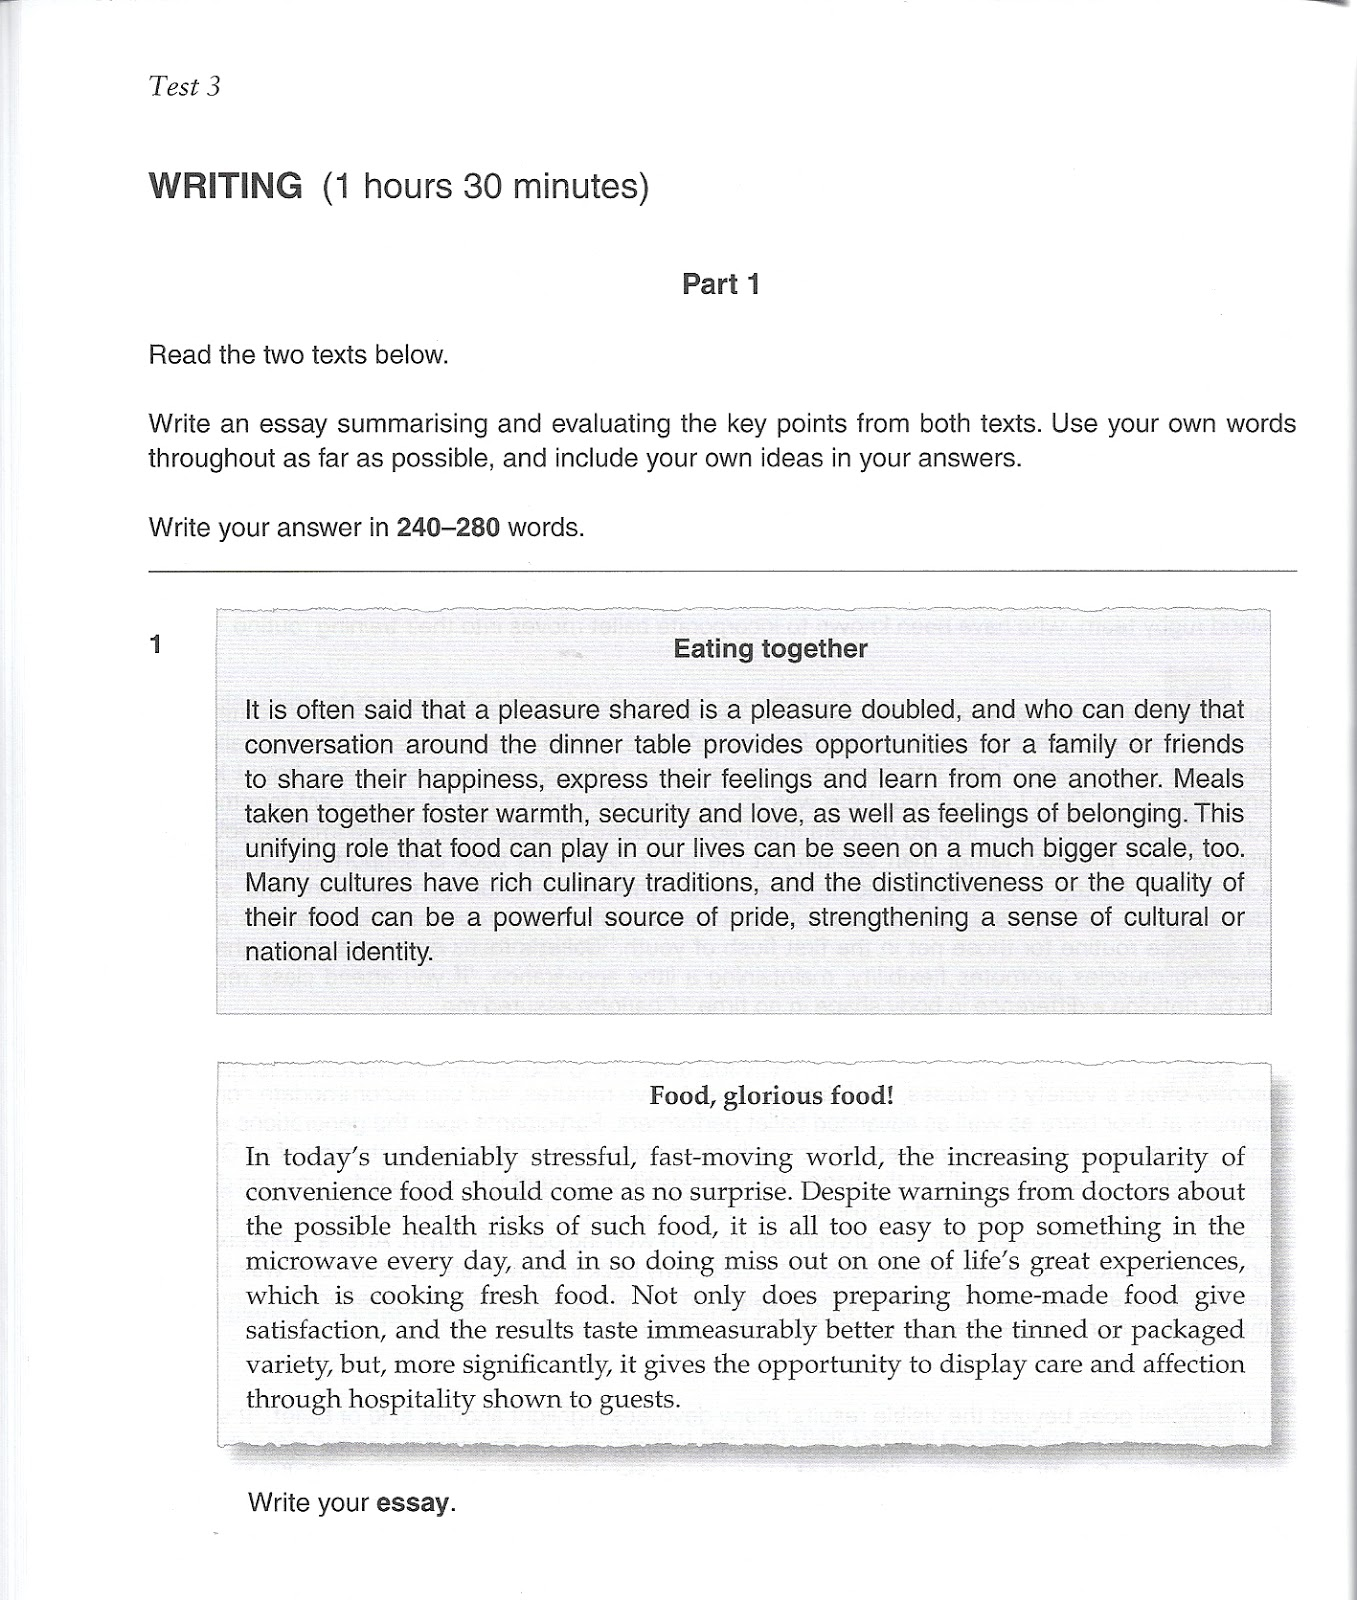 Descriptive Essay Of A Place Advanced English Essay English Essay Com Essayformatexample How Do English  Essay Com Essayformatexample How Do I Othello Essay Topics also Persuasive Essay Domestic Violence Advanced English Essay Cae Writing Part A Formal Essay Tim S English  Pay For Essay Writing